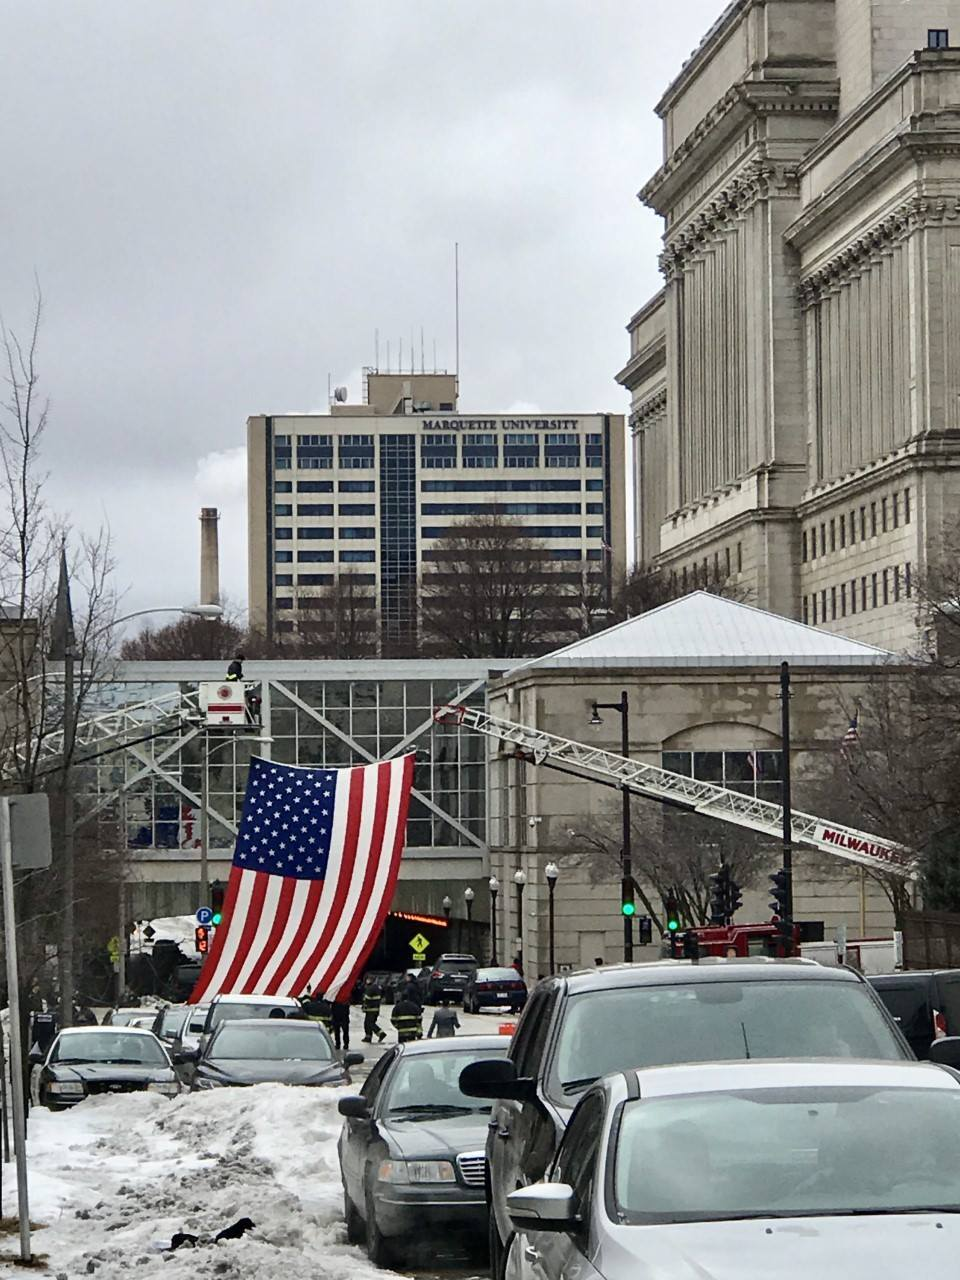 A giant American Flag was unfurled at 9th and State in downtown Milwaukee.